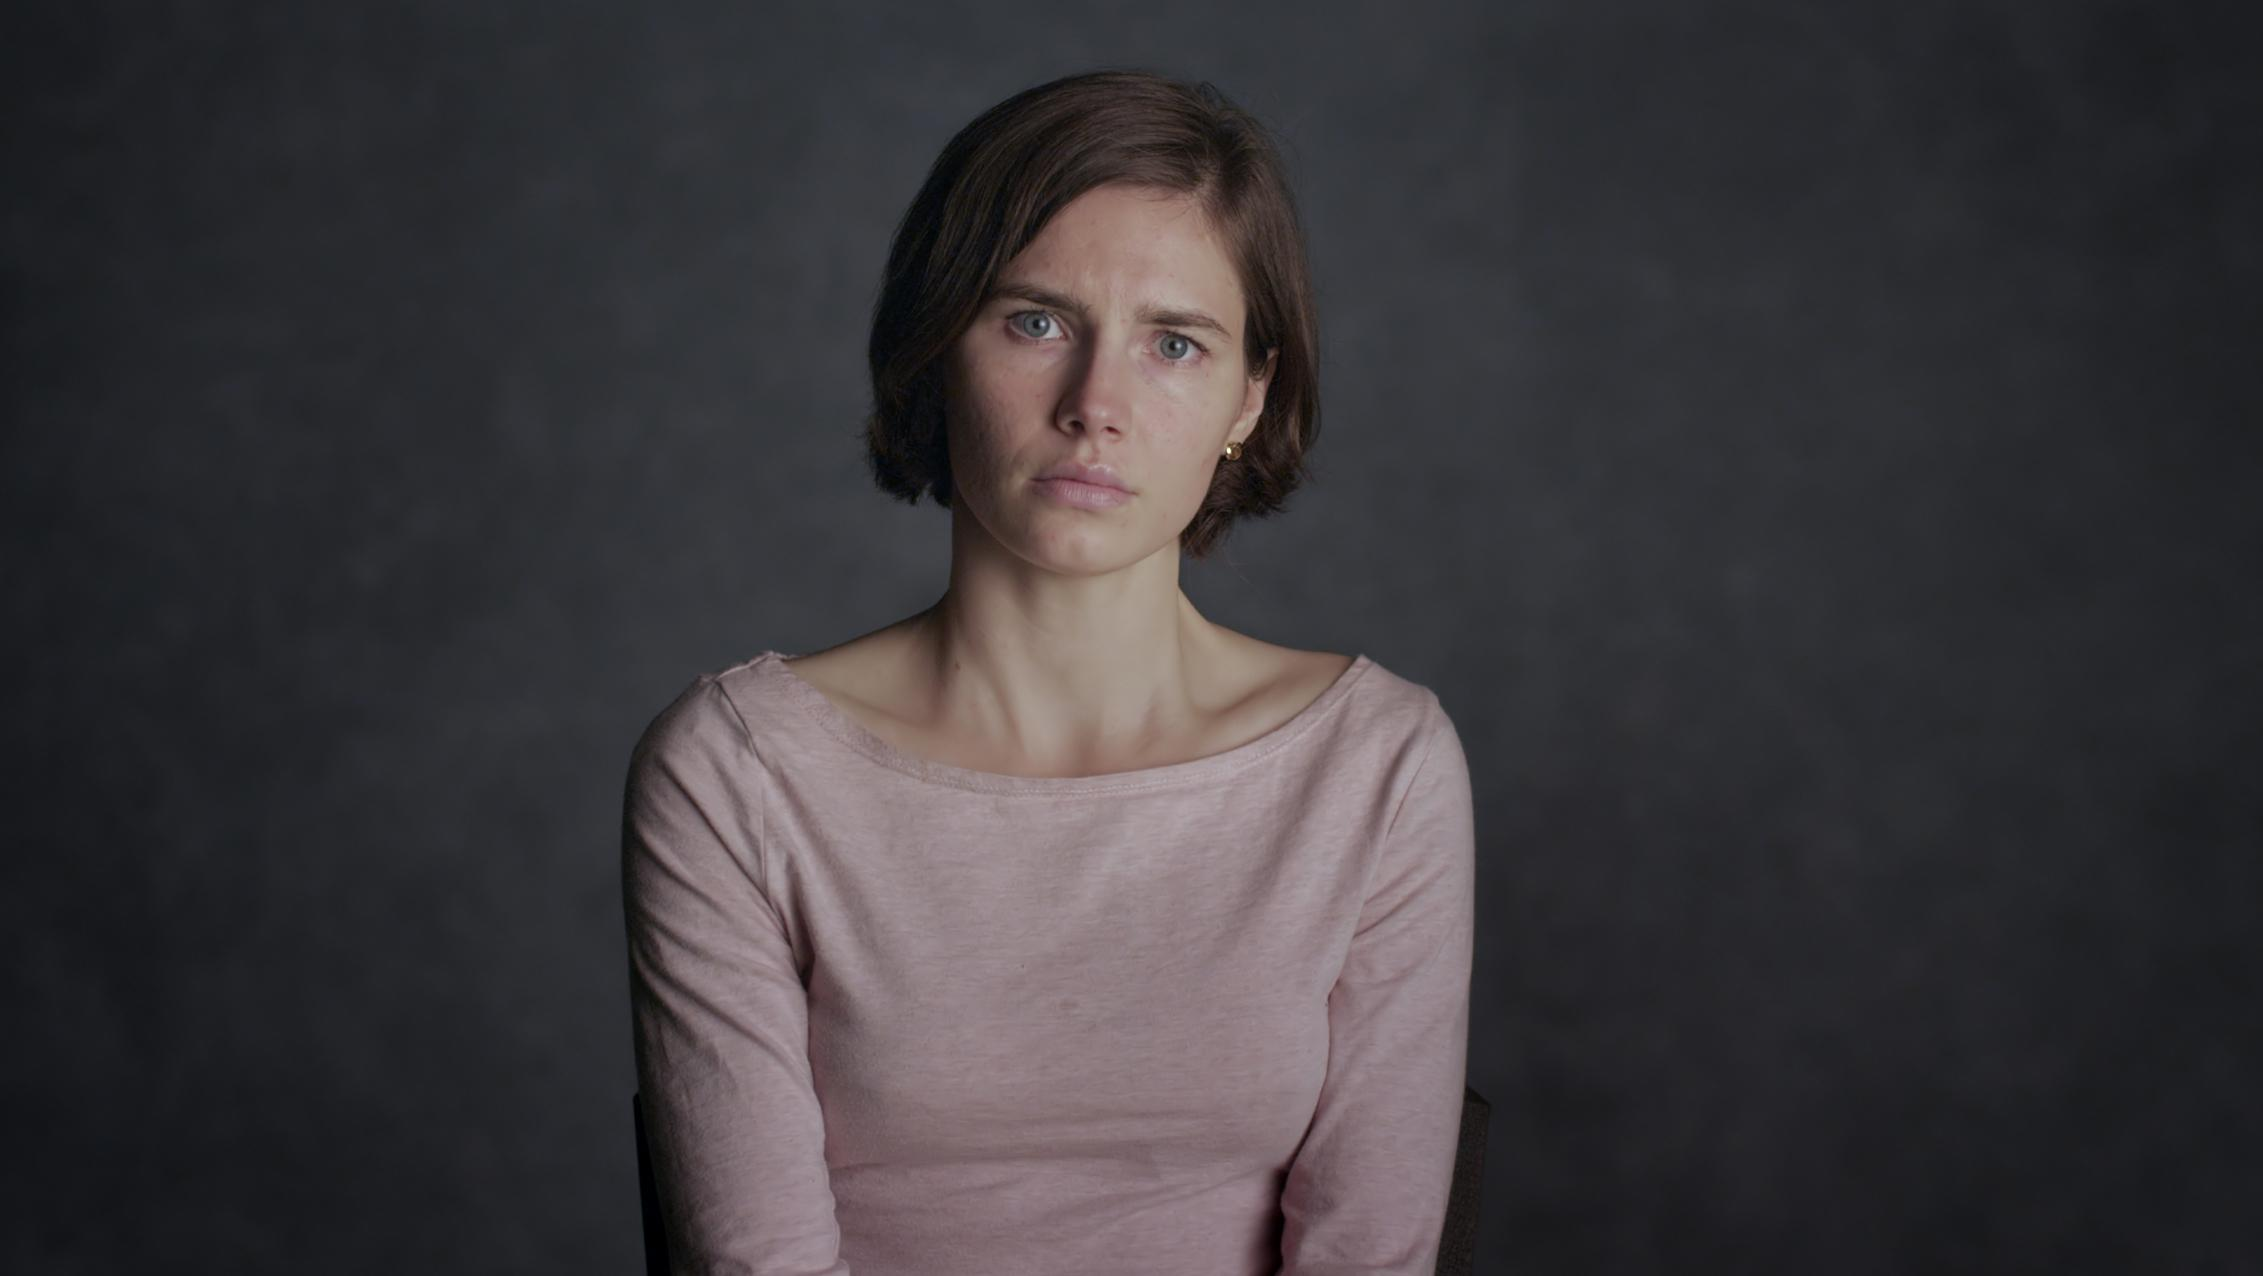 Freeing 'Foxy Knoxy': Why People Are So Obsessed with Amanda Knox